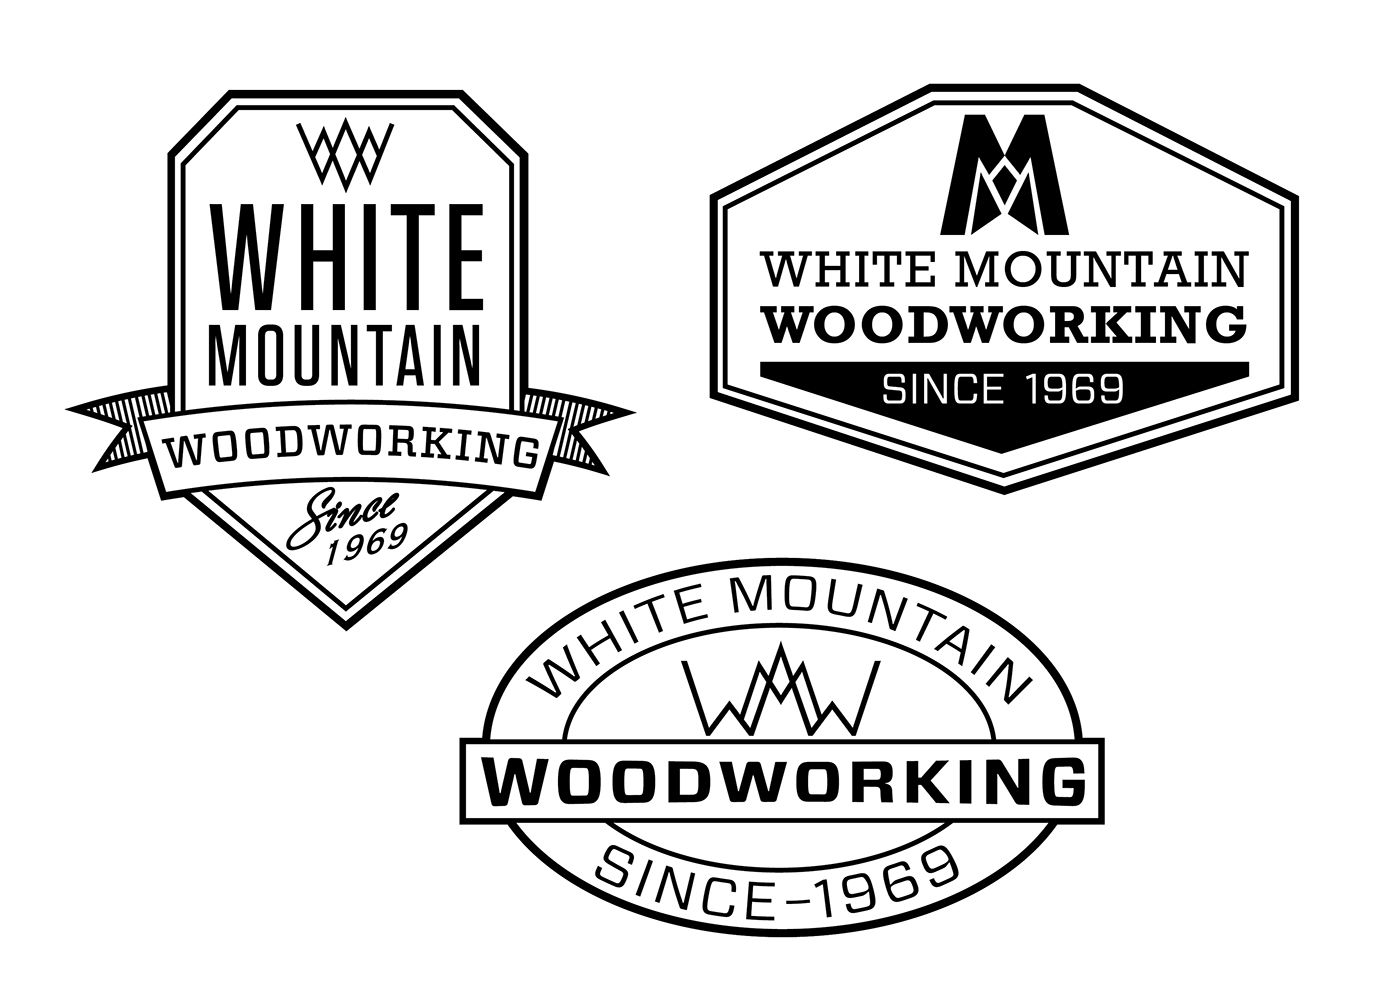 White Mountain Woodworking Branding Project on Behance